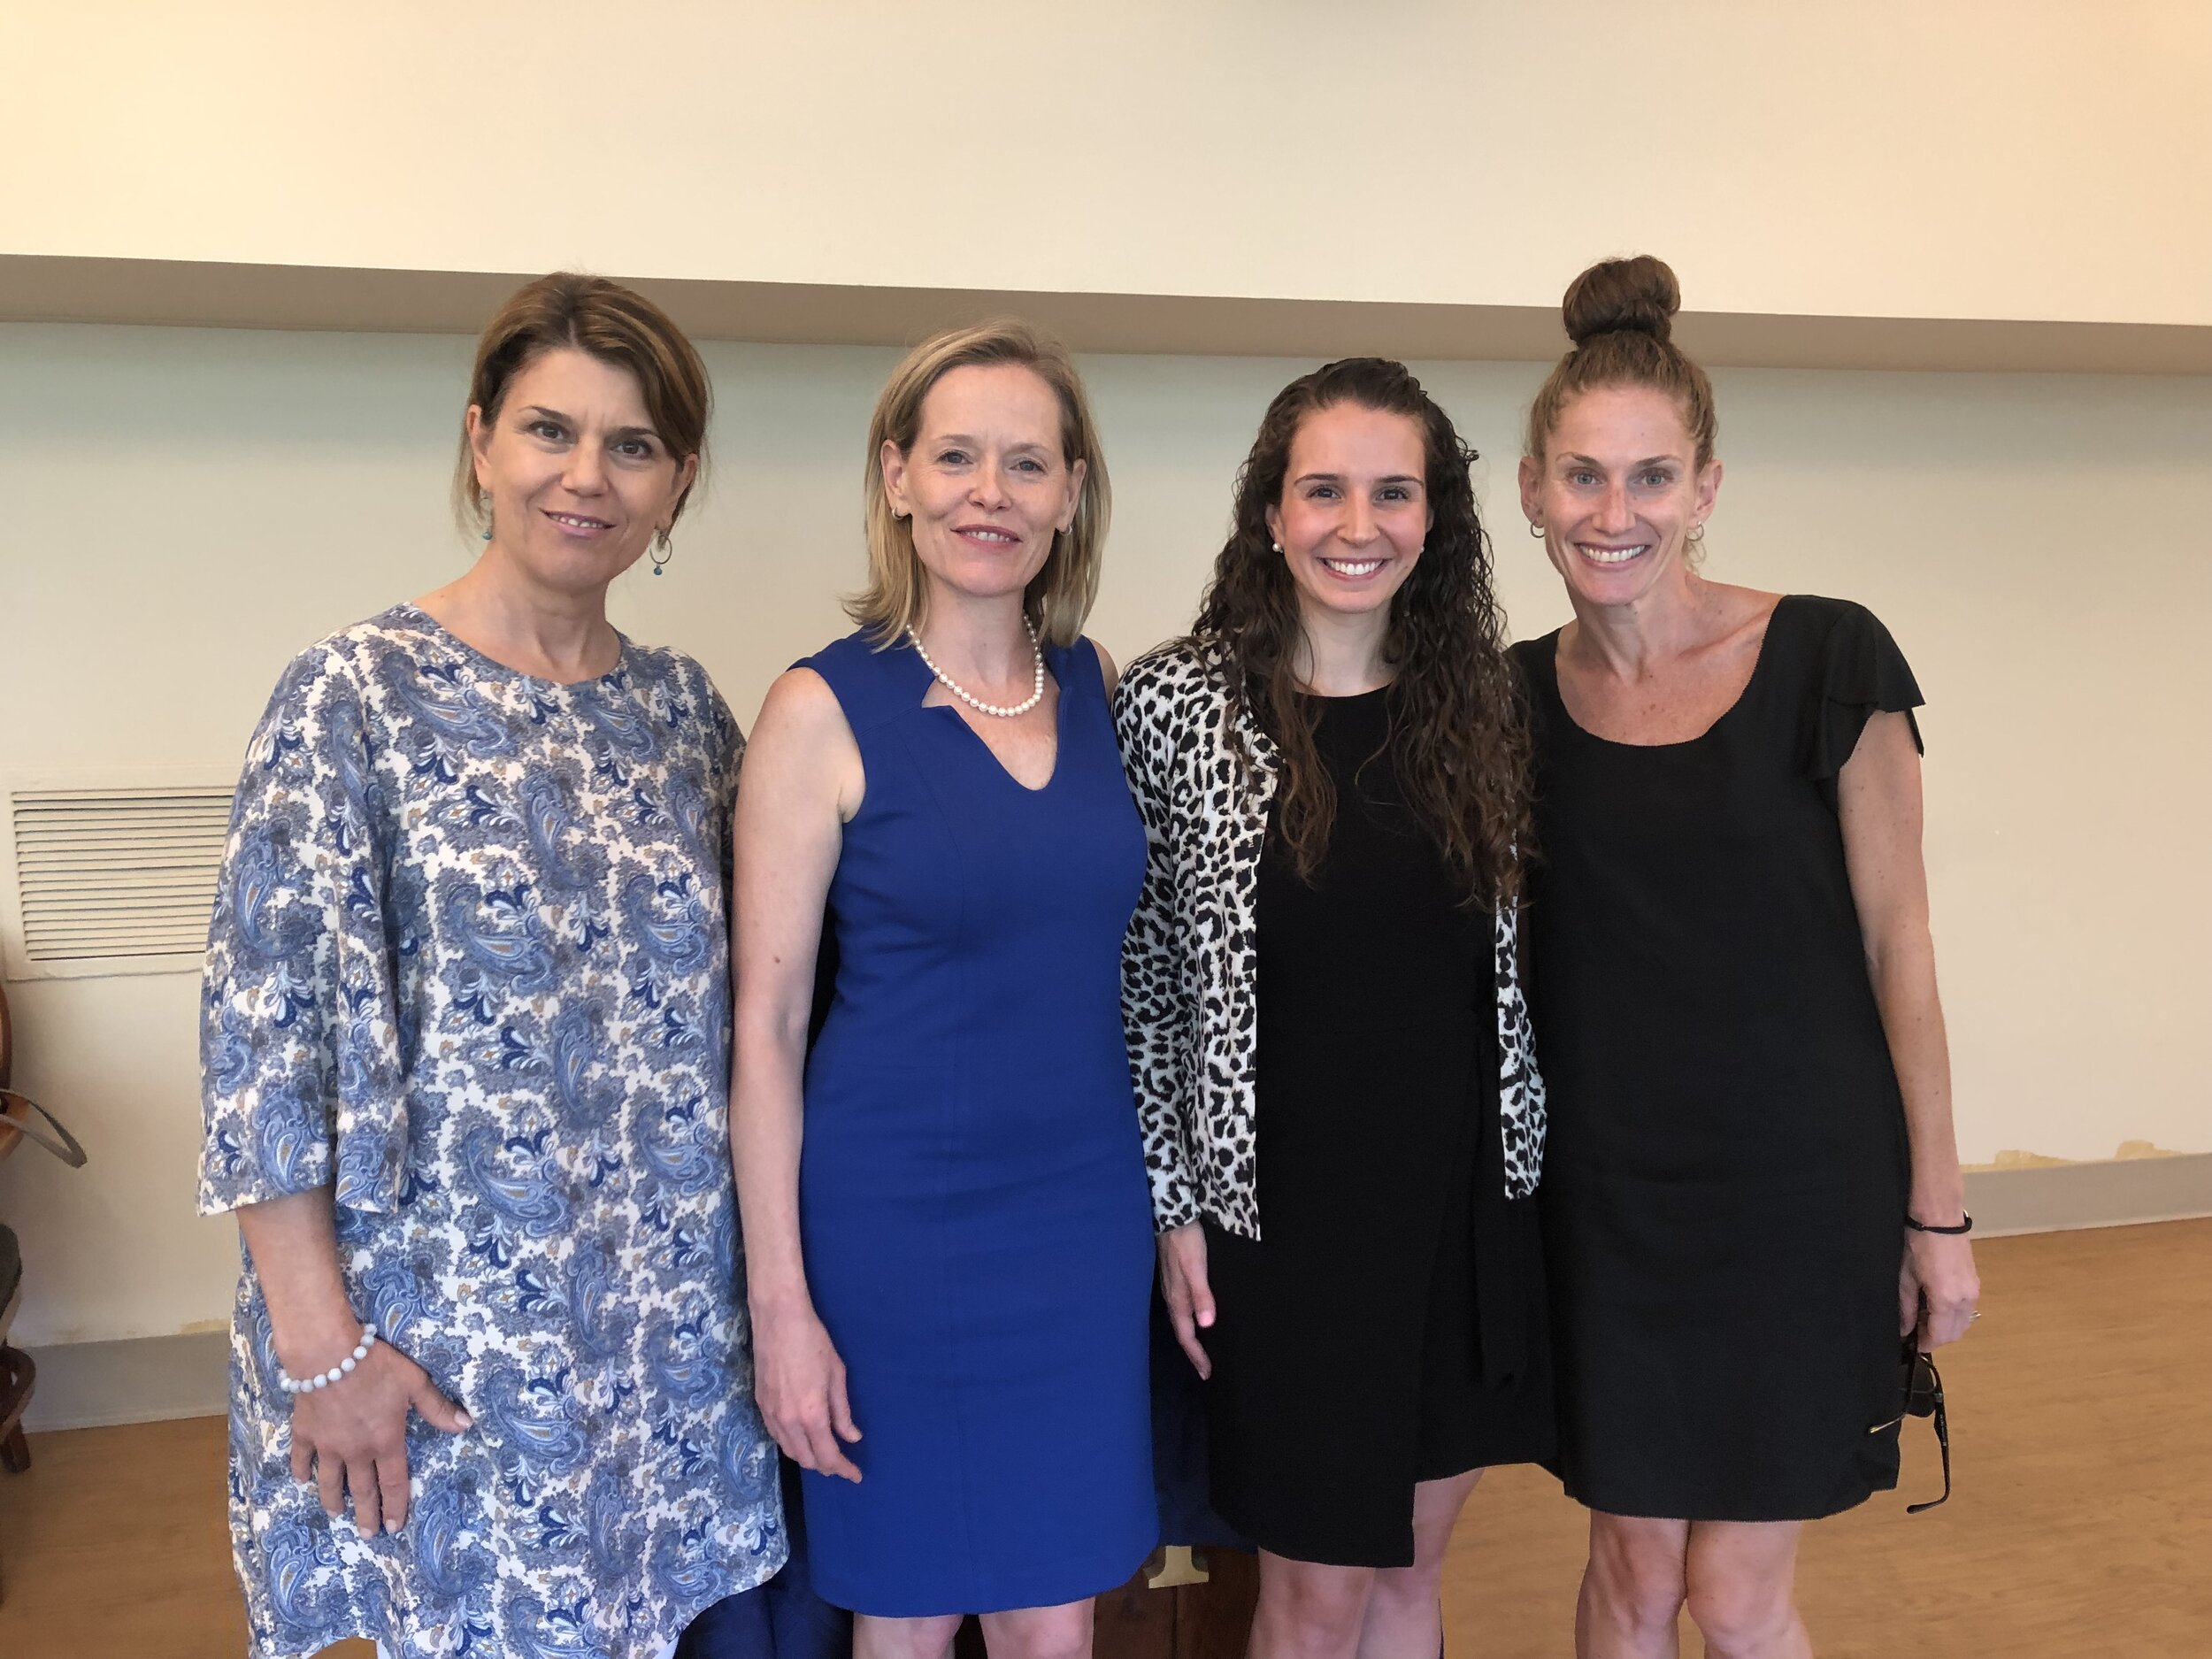 Photo from July 9, 2019 Session on Elder Law and Legal Matters. Pictured are Patti Pelican, Eileen Henry, Esq., Lauren Enea, Esq. and Carrie Sena